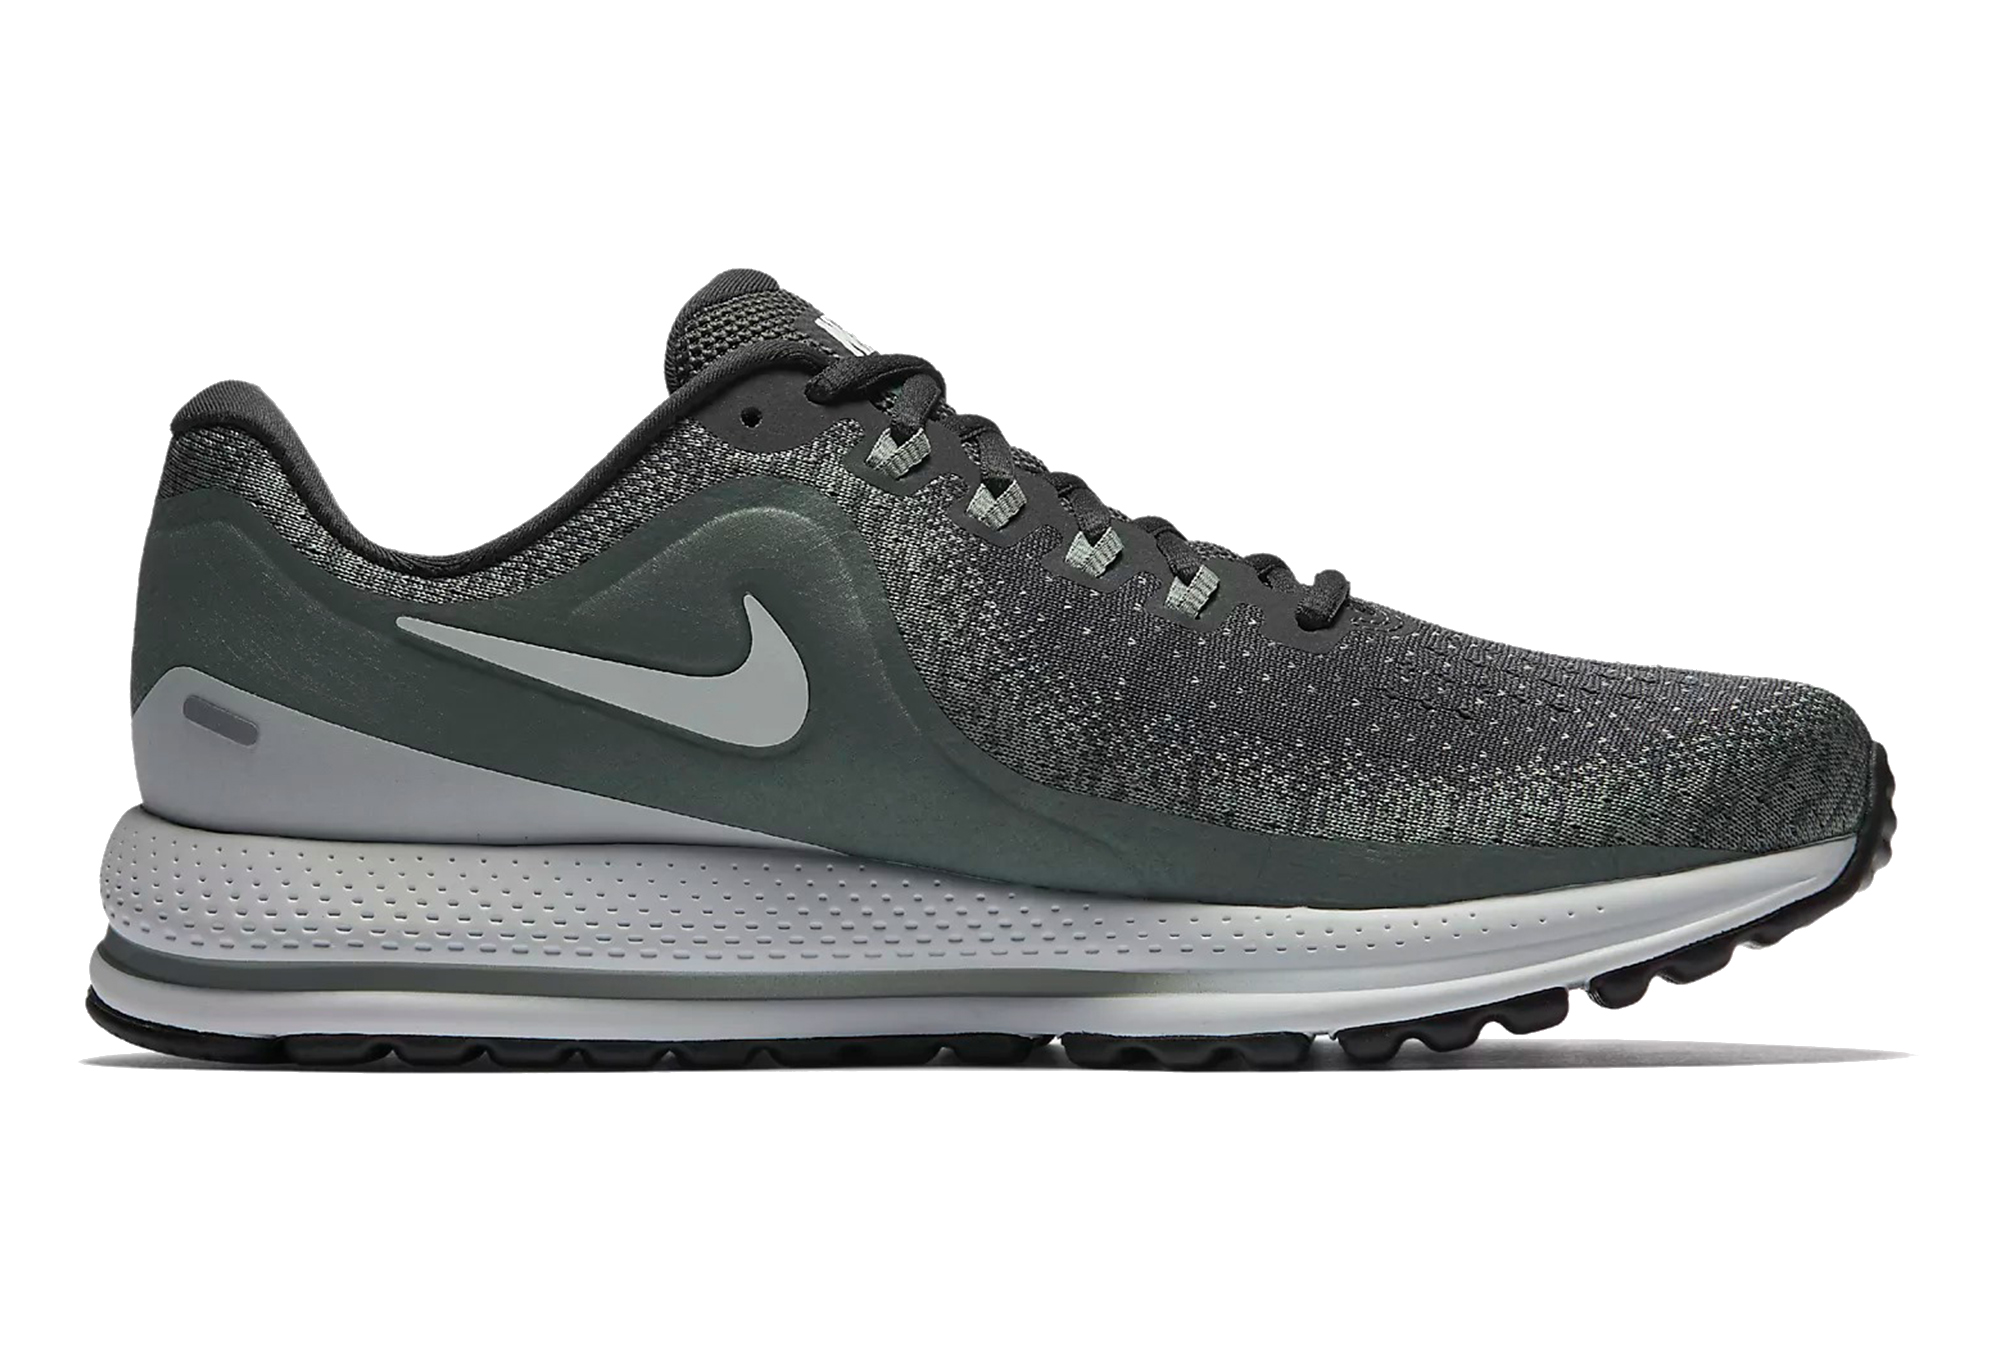 best website ffb13 2a586 Chaussures de Running Nike Air Zoom Vomero 13 Gris   Vert